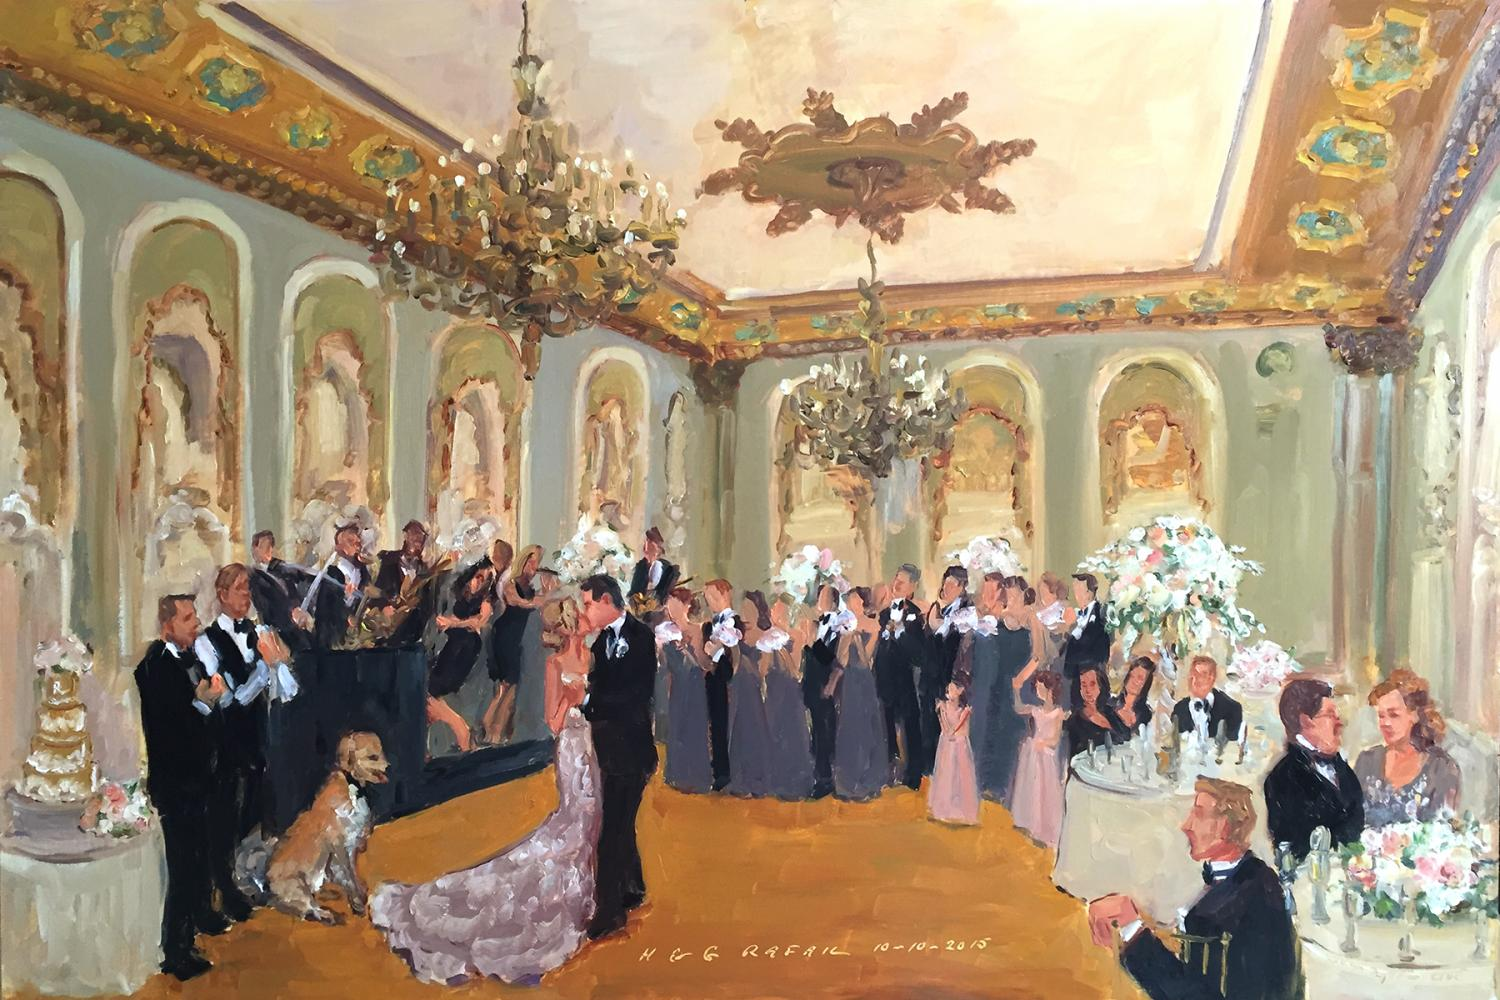 Hoel du Pont wedding painted live by The Event Painter Joan Zylkin